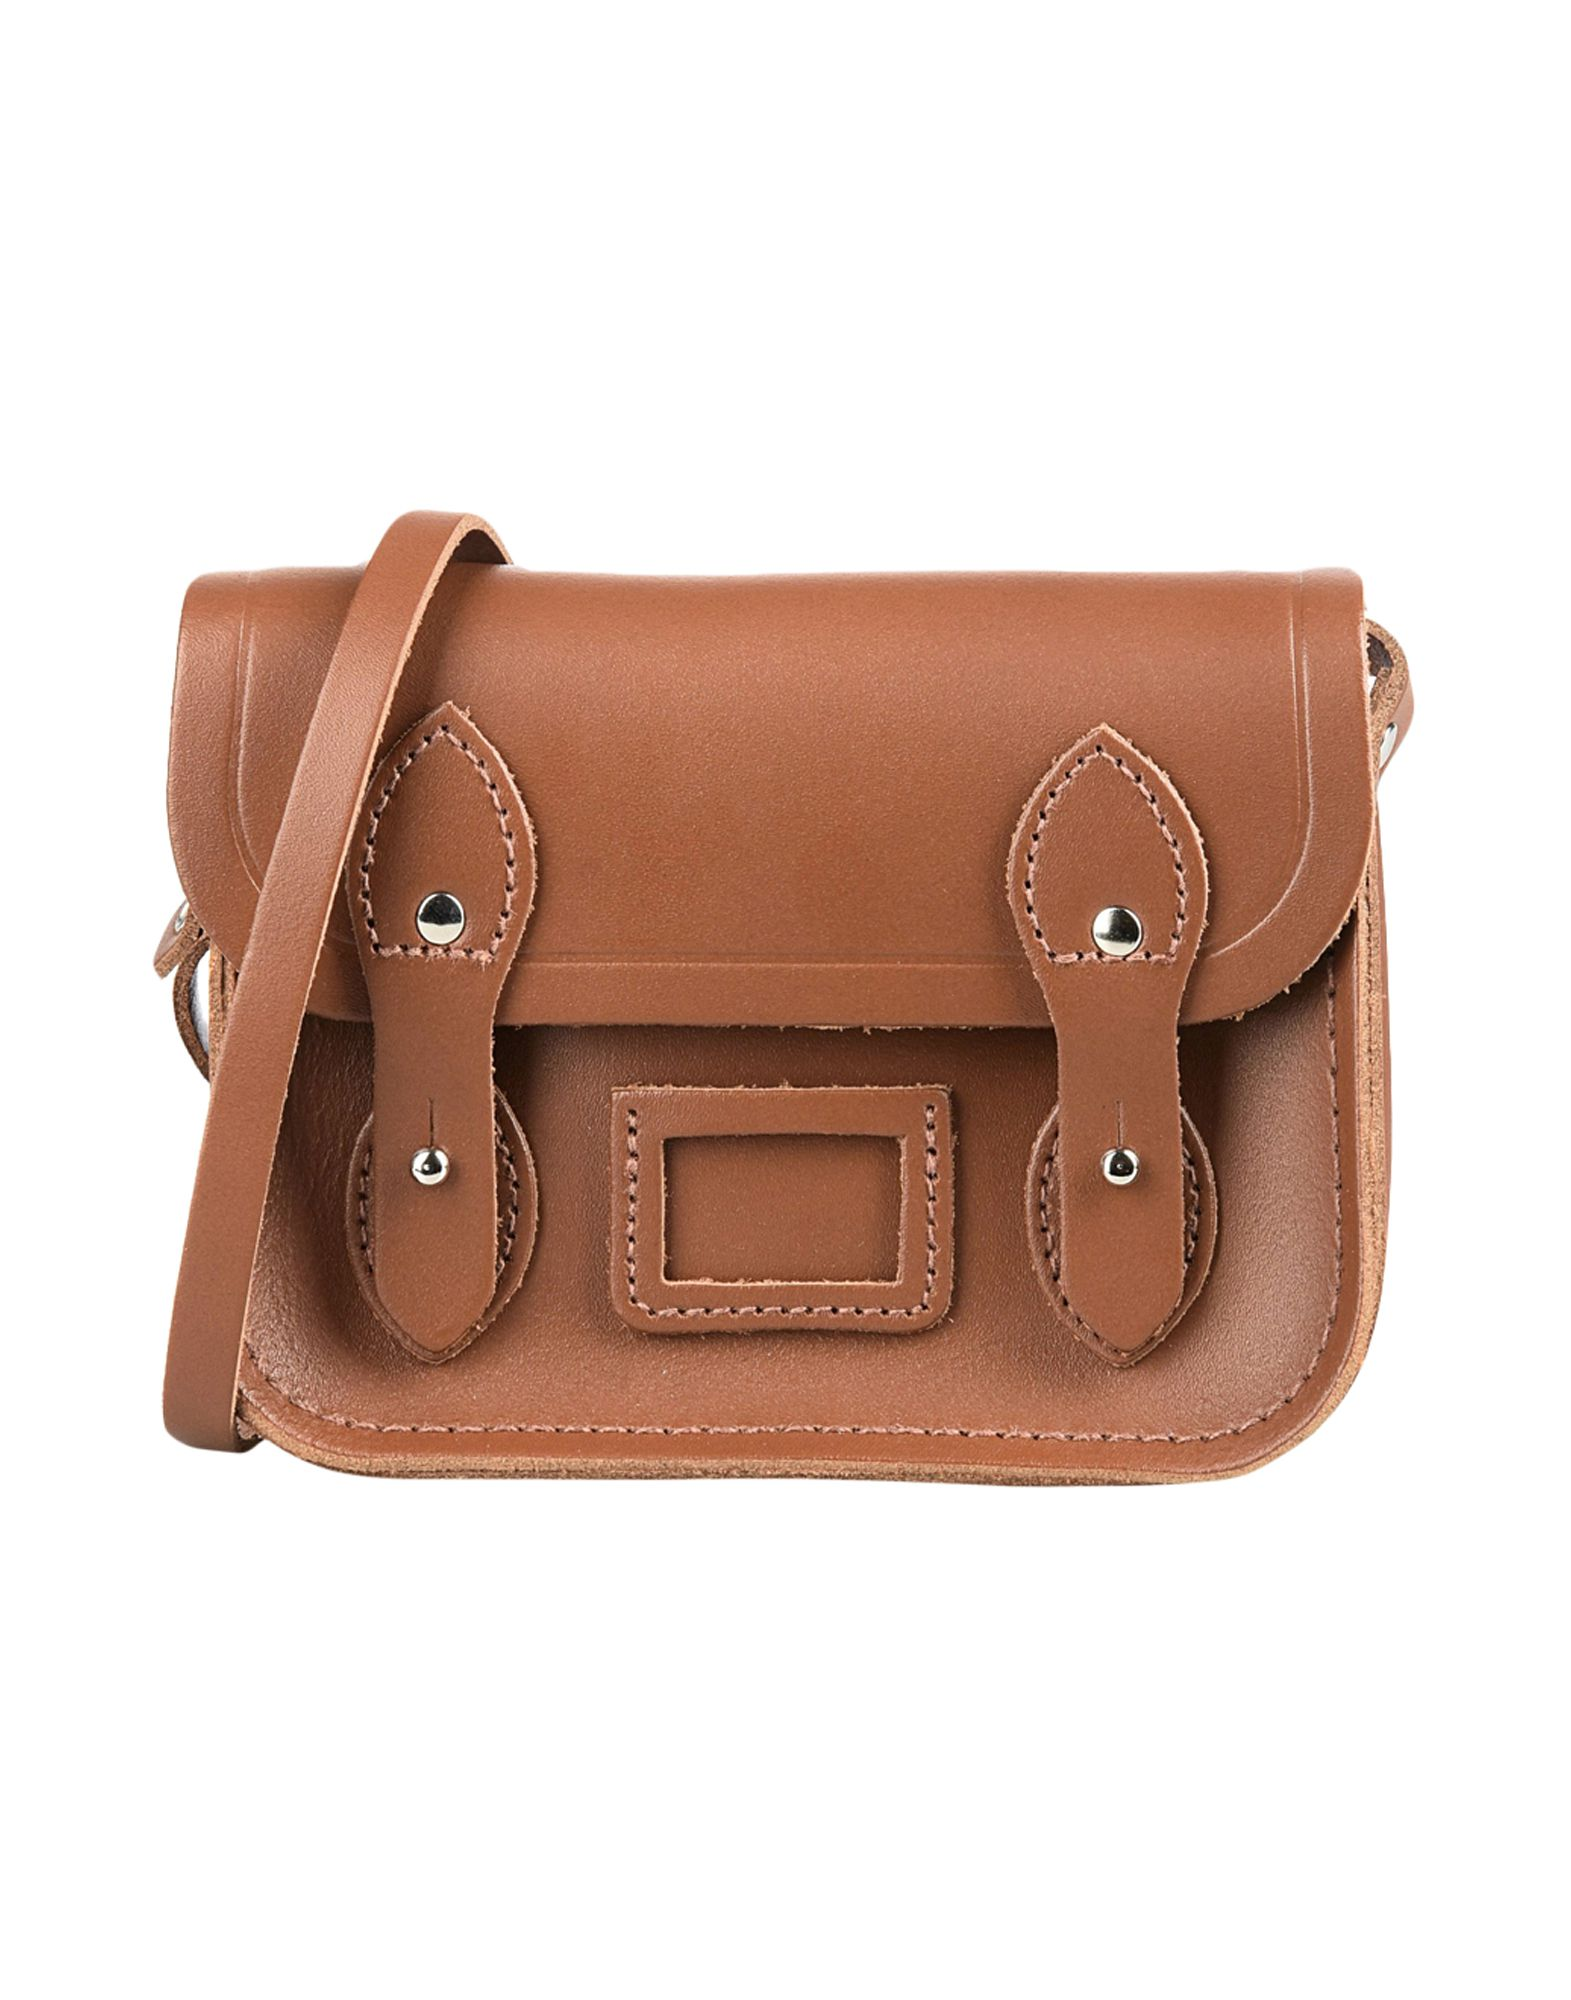 31c524770a754 The Cambridge Satchel Company Tiny Satchel - Handbag - Women The Cambridge  Satchel Company Handbags online on YOOX Australia - 45332523